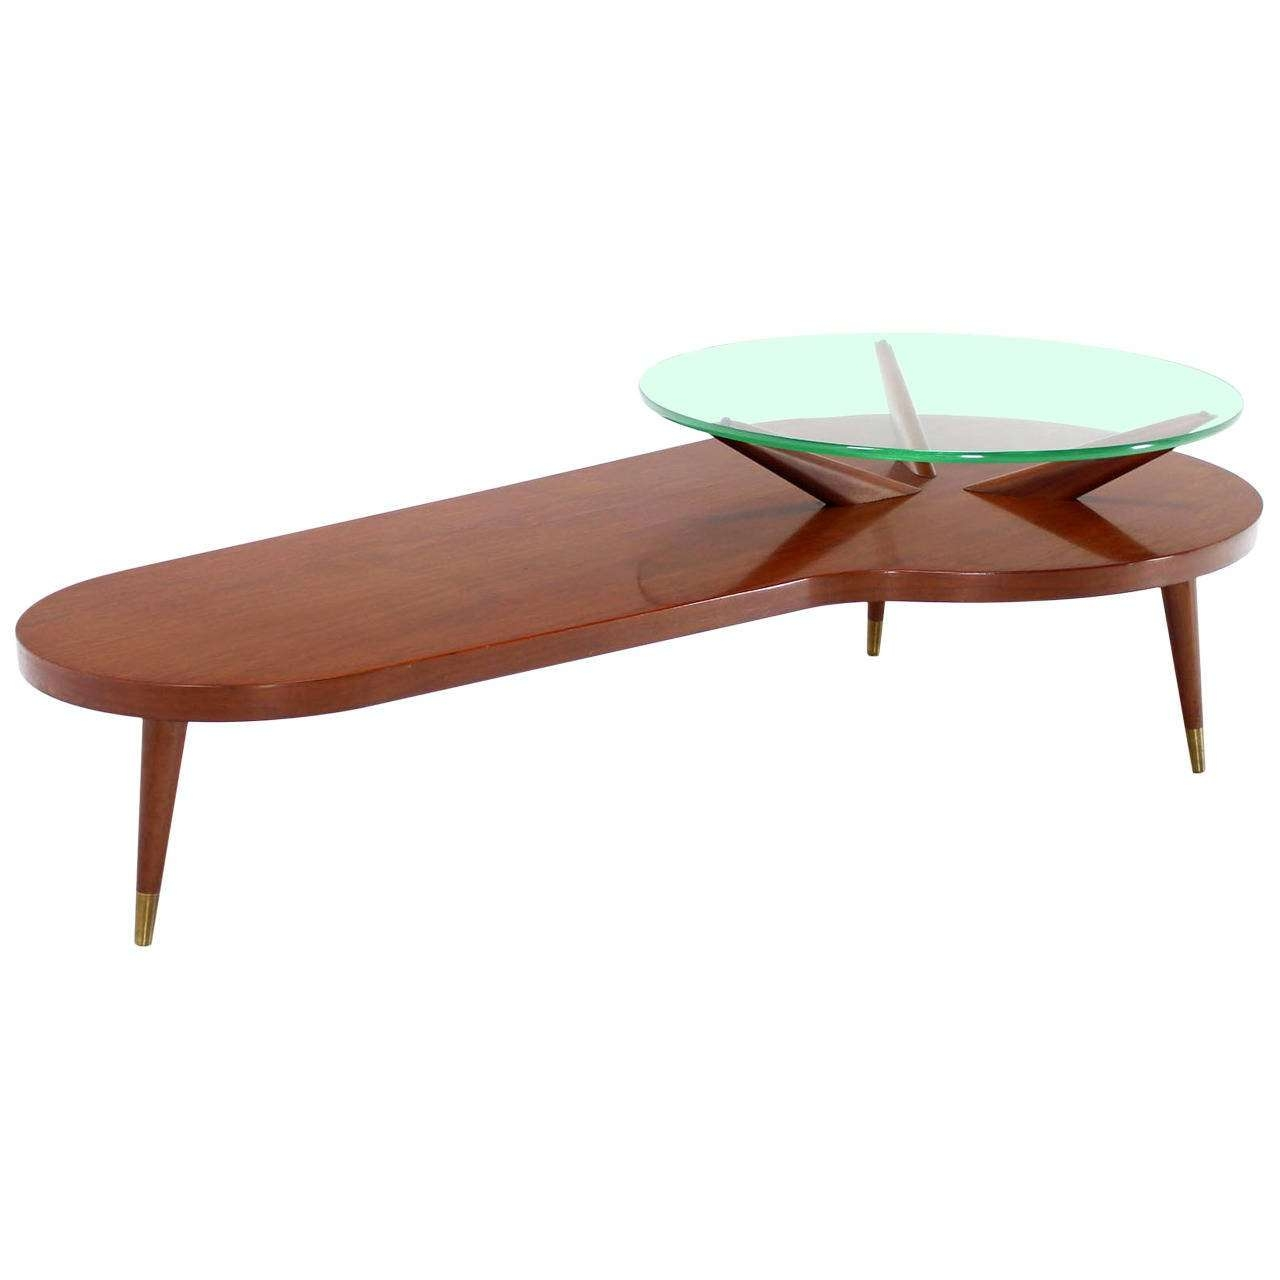 Mid Century Modern Walnut Organic Kidney Shape Coffee Table Round With Fashionable Oval Shaped Glass Coffee Tables (View 19 of 20)